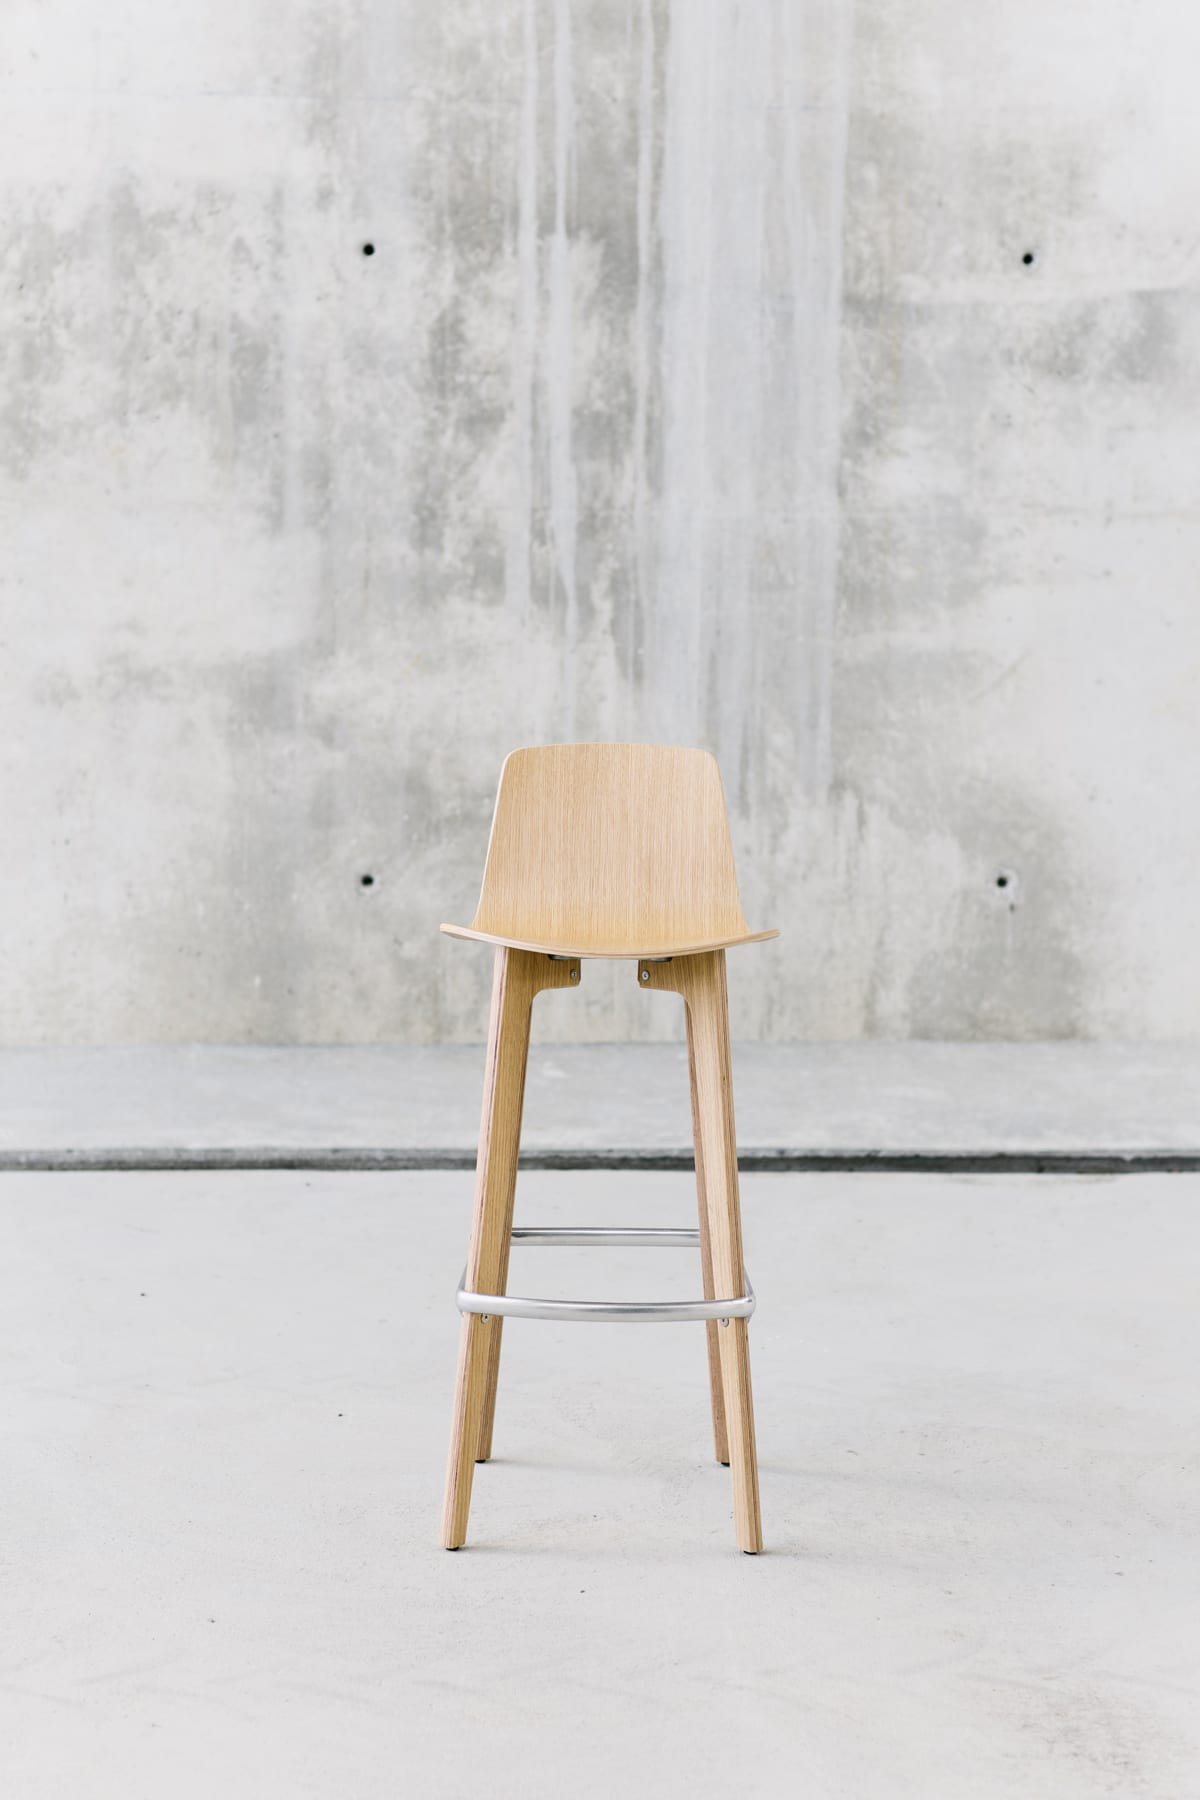 Lottus Wood stool